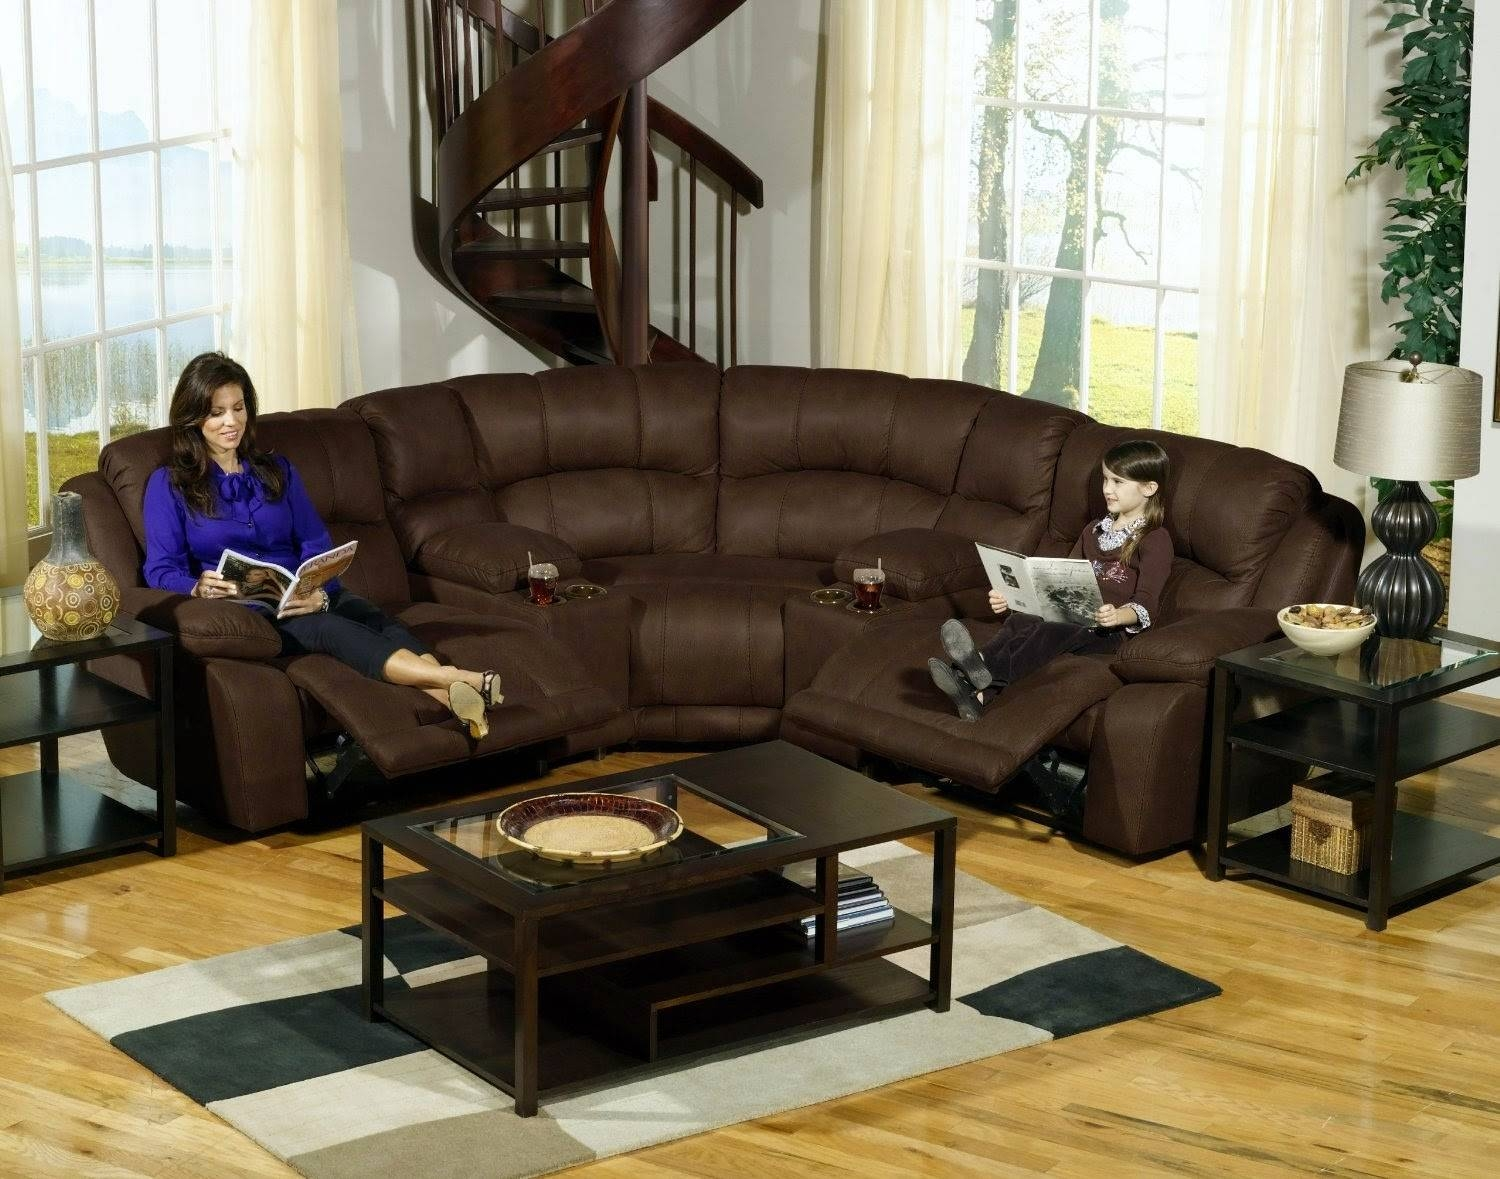 Wonderful Leather Sectional Sofa With Power Recliner 61 On Modern with Leather Sectional Sofas Toronto (Image 25 of 25)